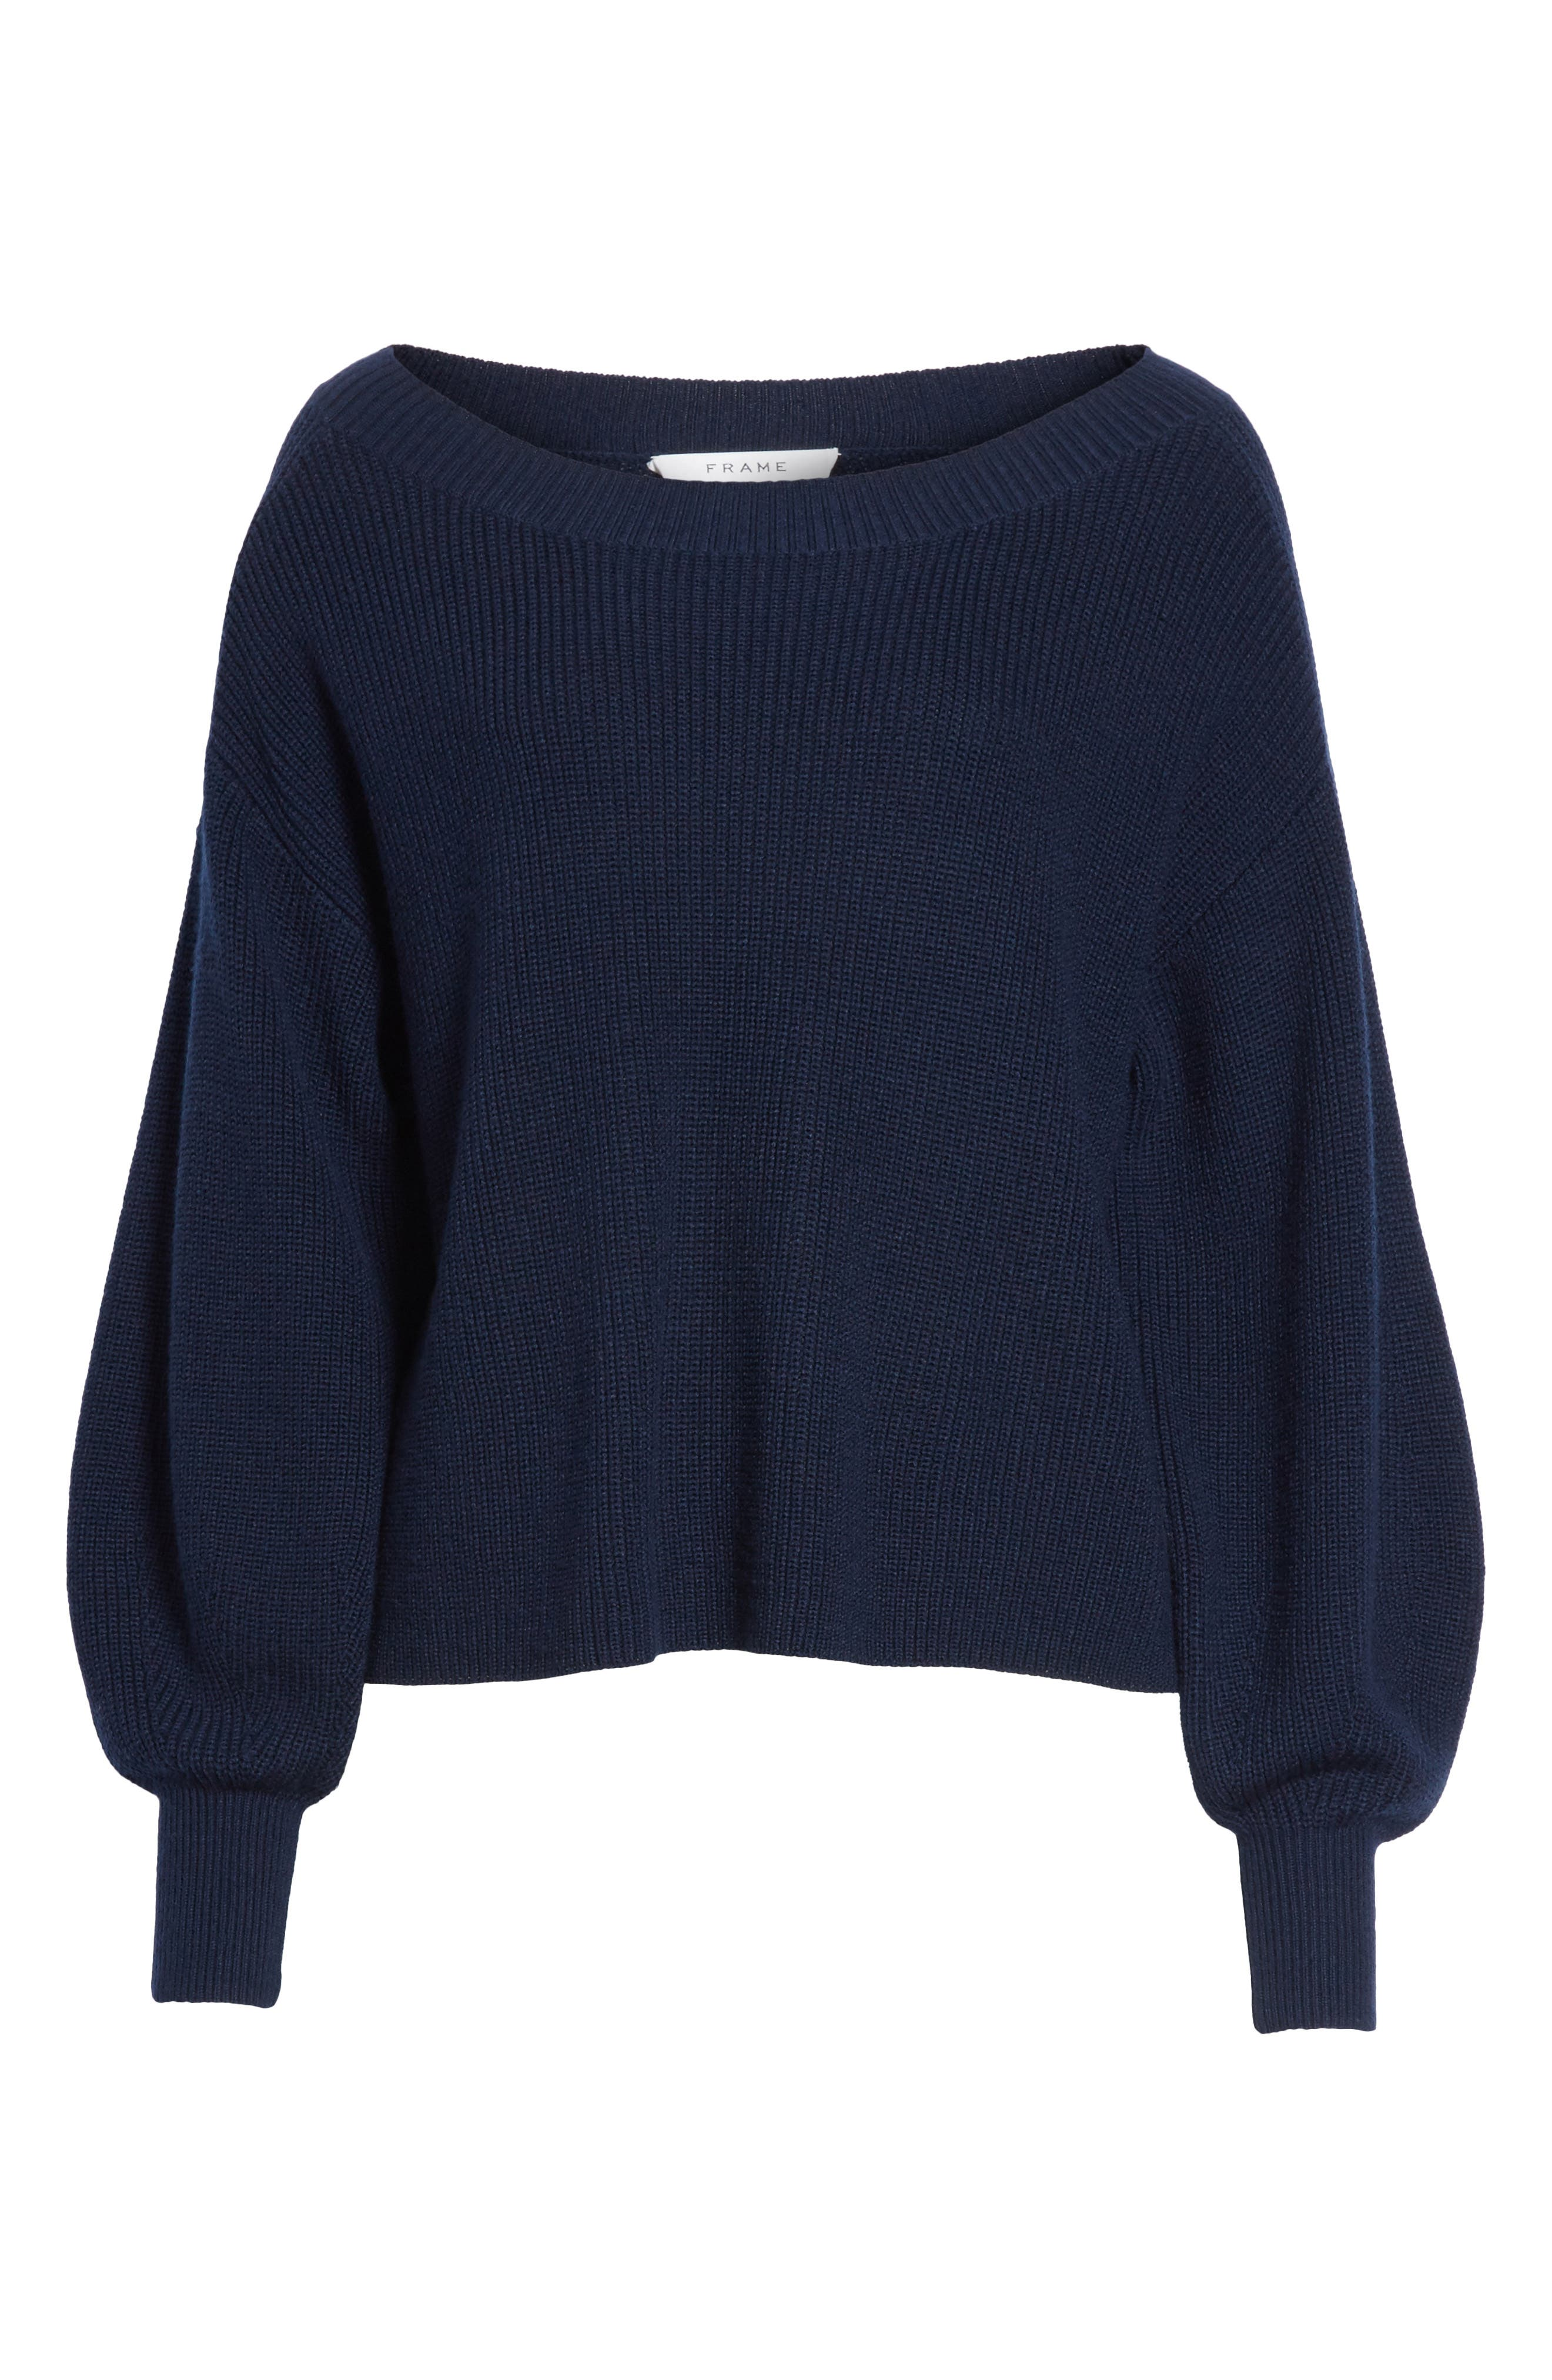 Bateau Neck Merino Wool Blend Sweater,                             Alternate thumbnail 7, color,                             Dark Navy